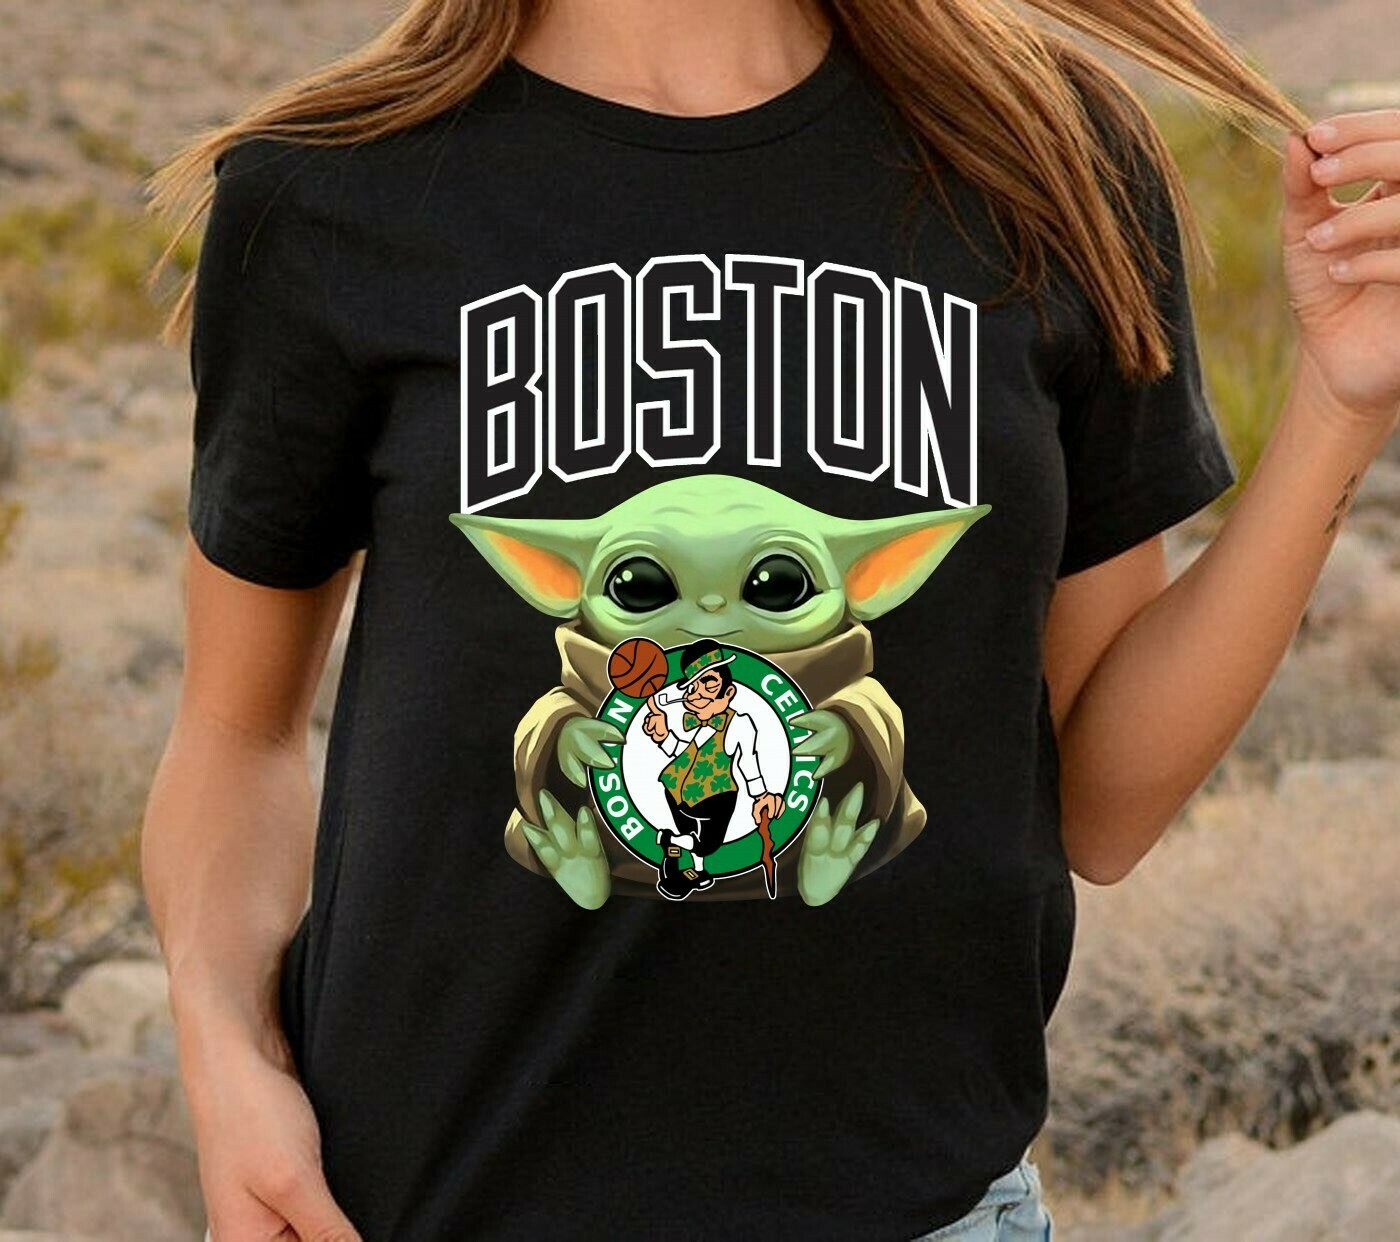 Boston Celtics Baby Yoda Star Wars The Mandalorian The Child First Memories Floating NBA Basketball Dad Mon Kid Fan Gift T-Shirt Long Sleeve Sweatshirt Hoodie Jolly Family Gifts